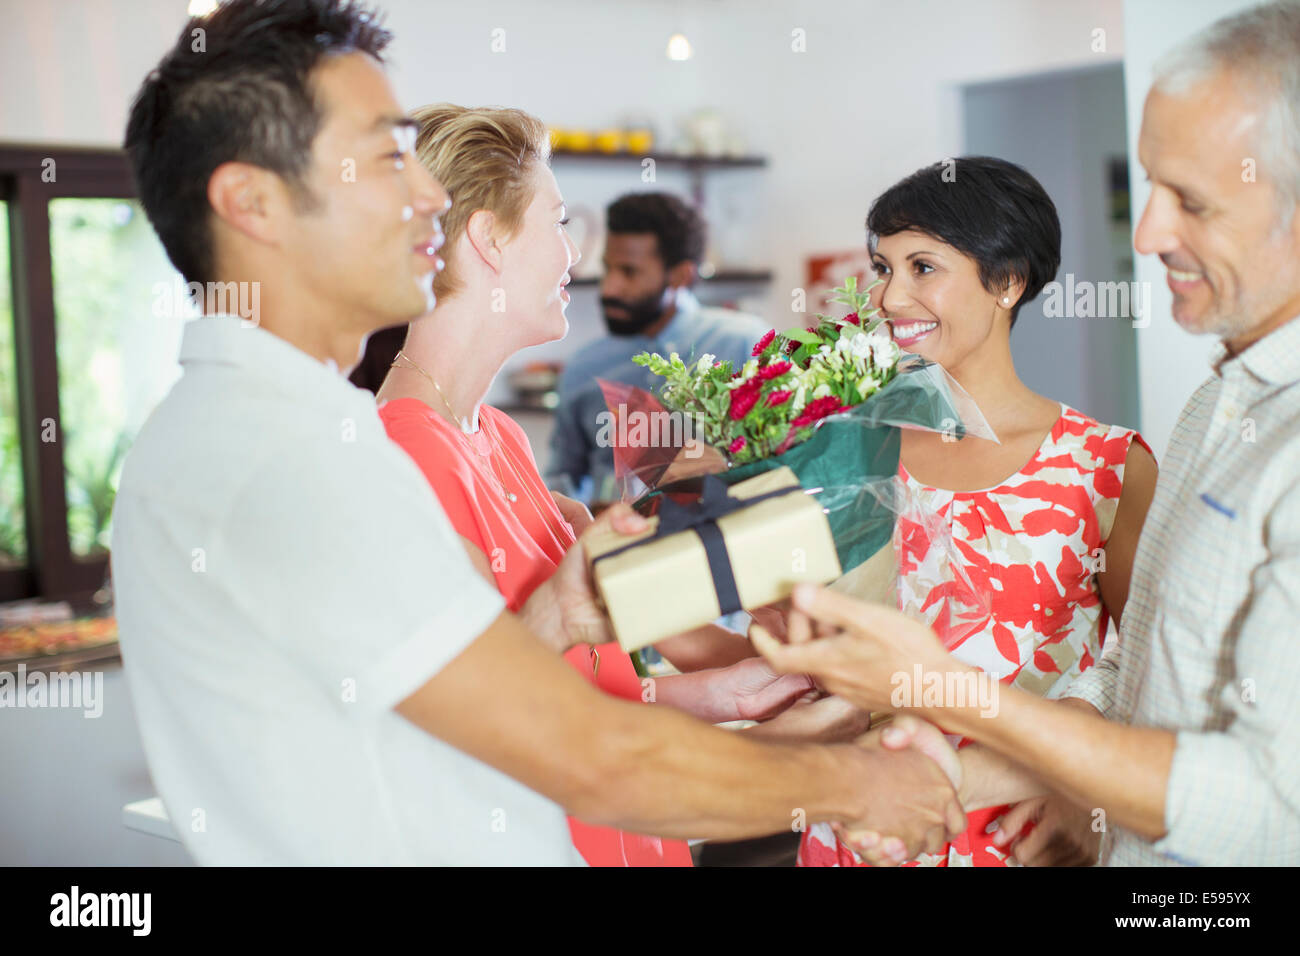 Couple exchanging gifts at party - Stock Image